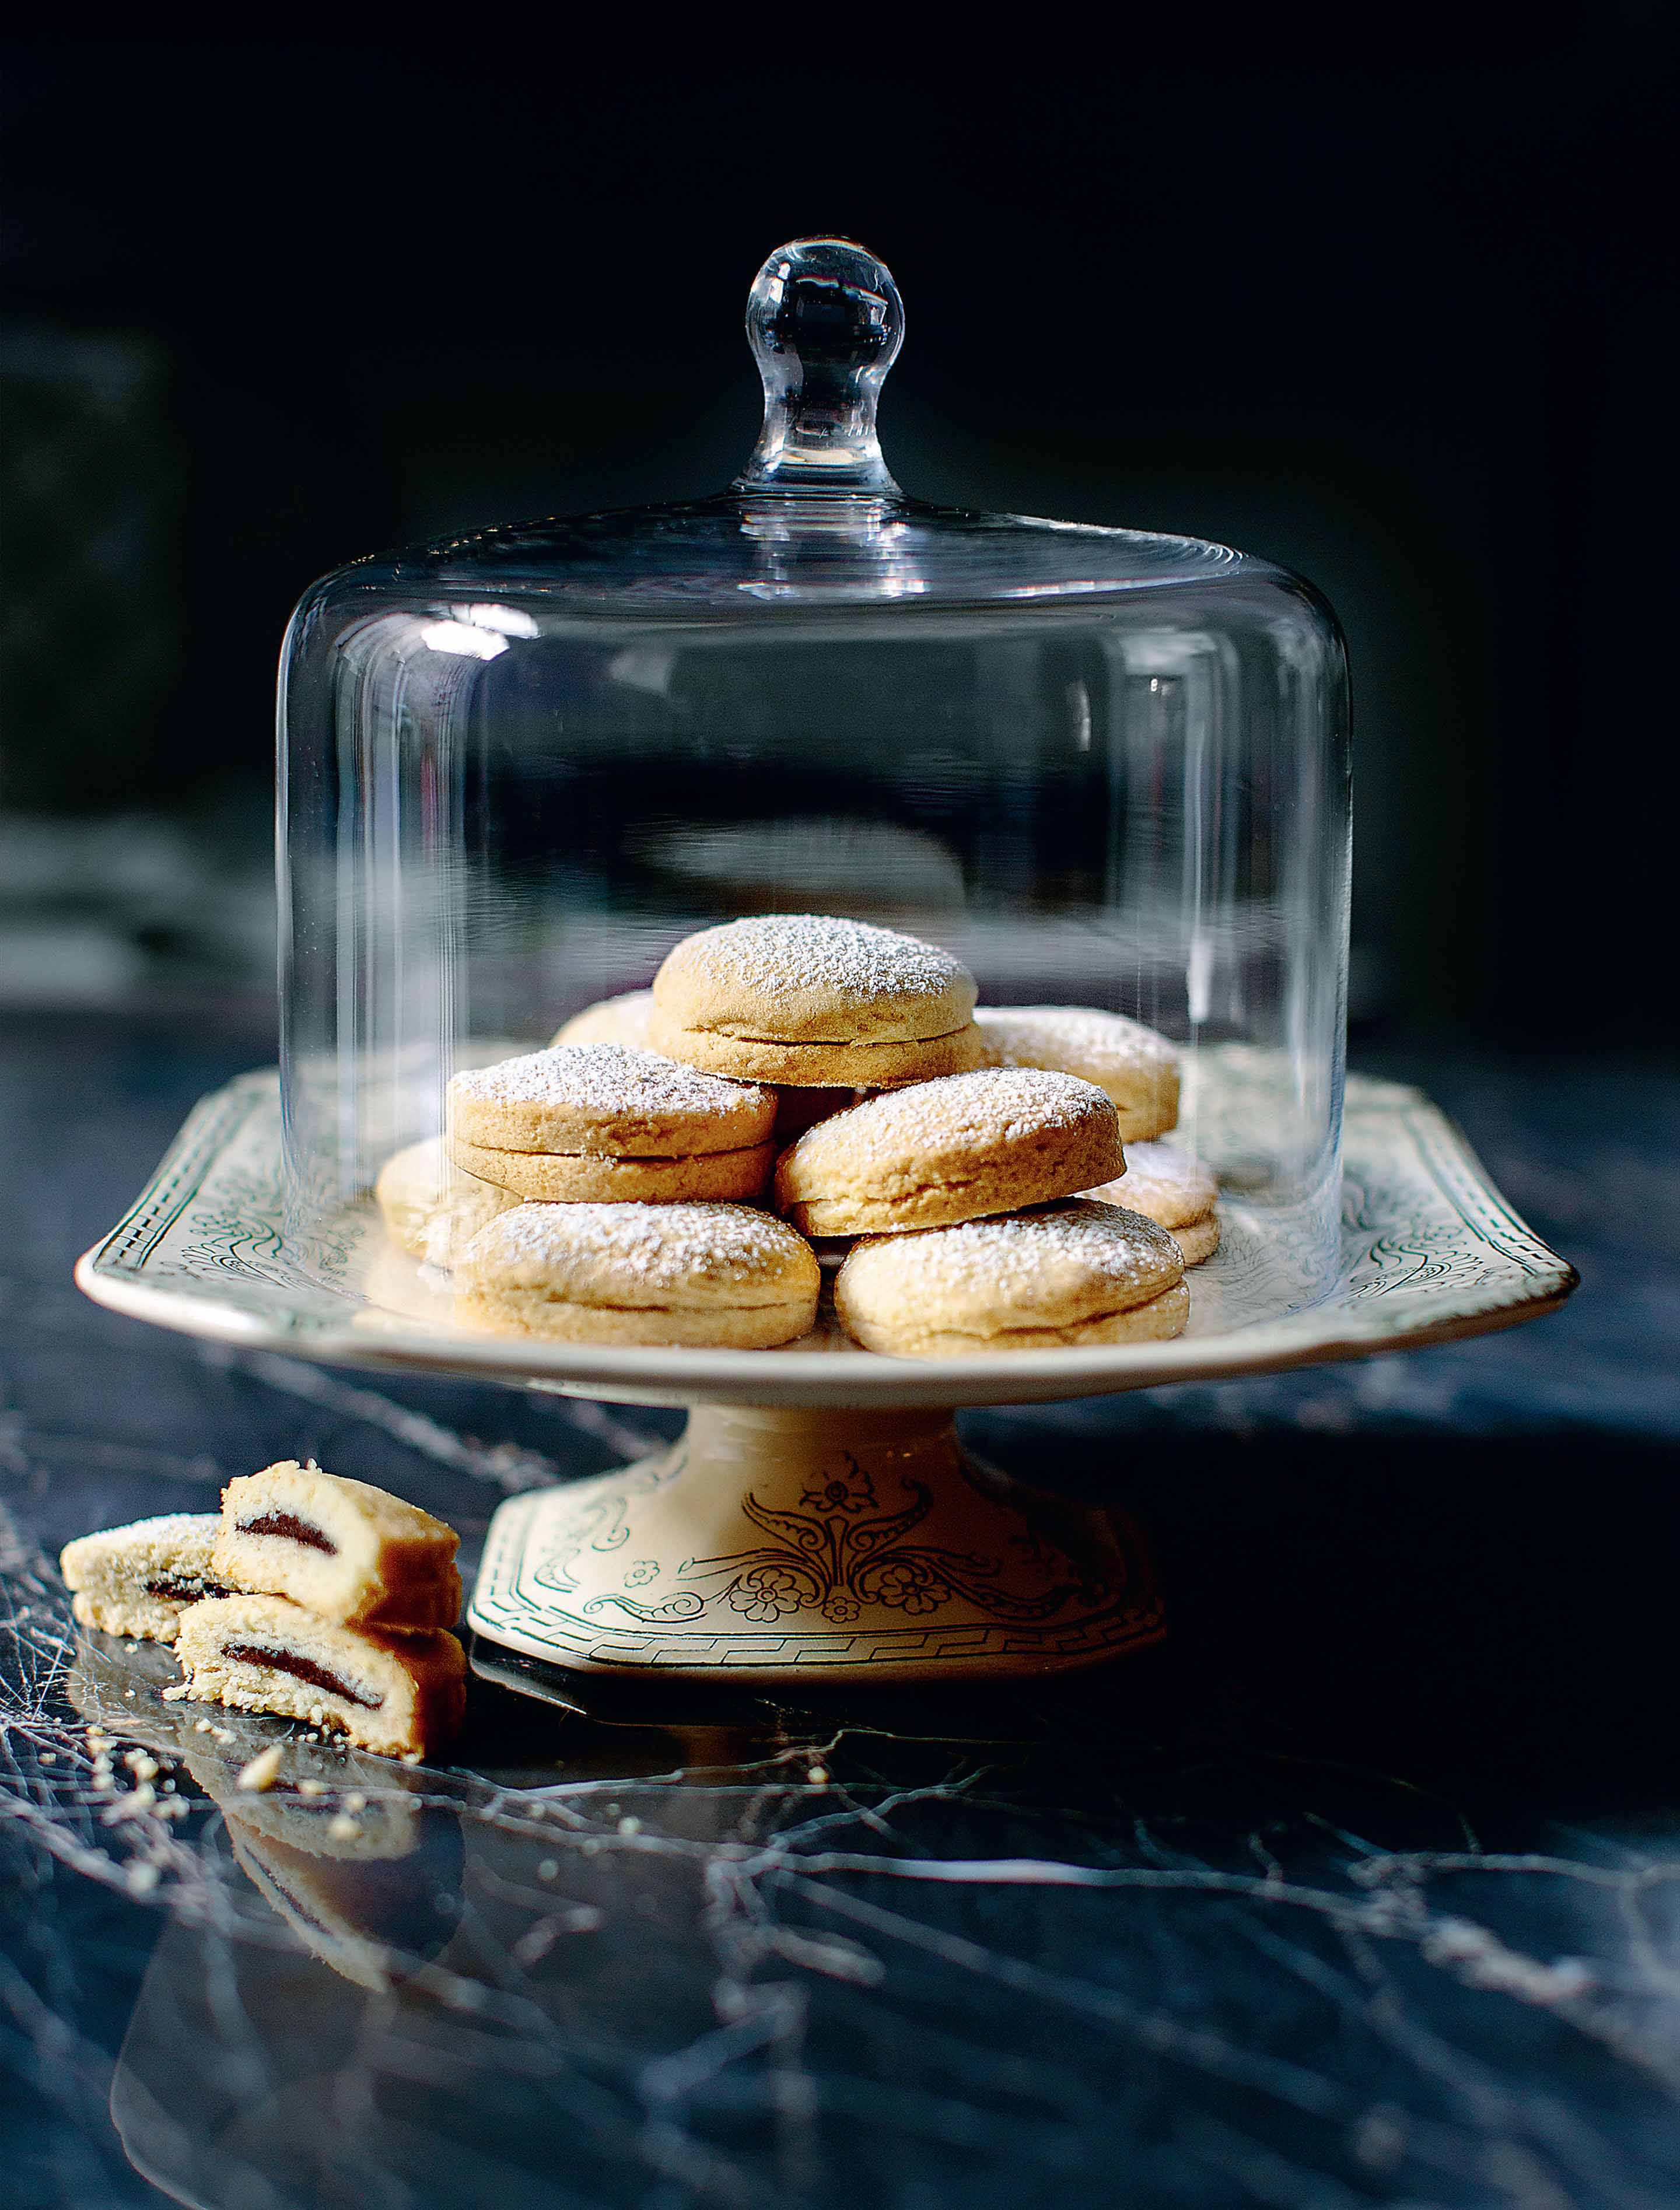 Hazelnut-filled cookies